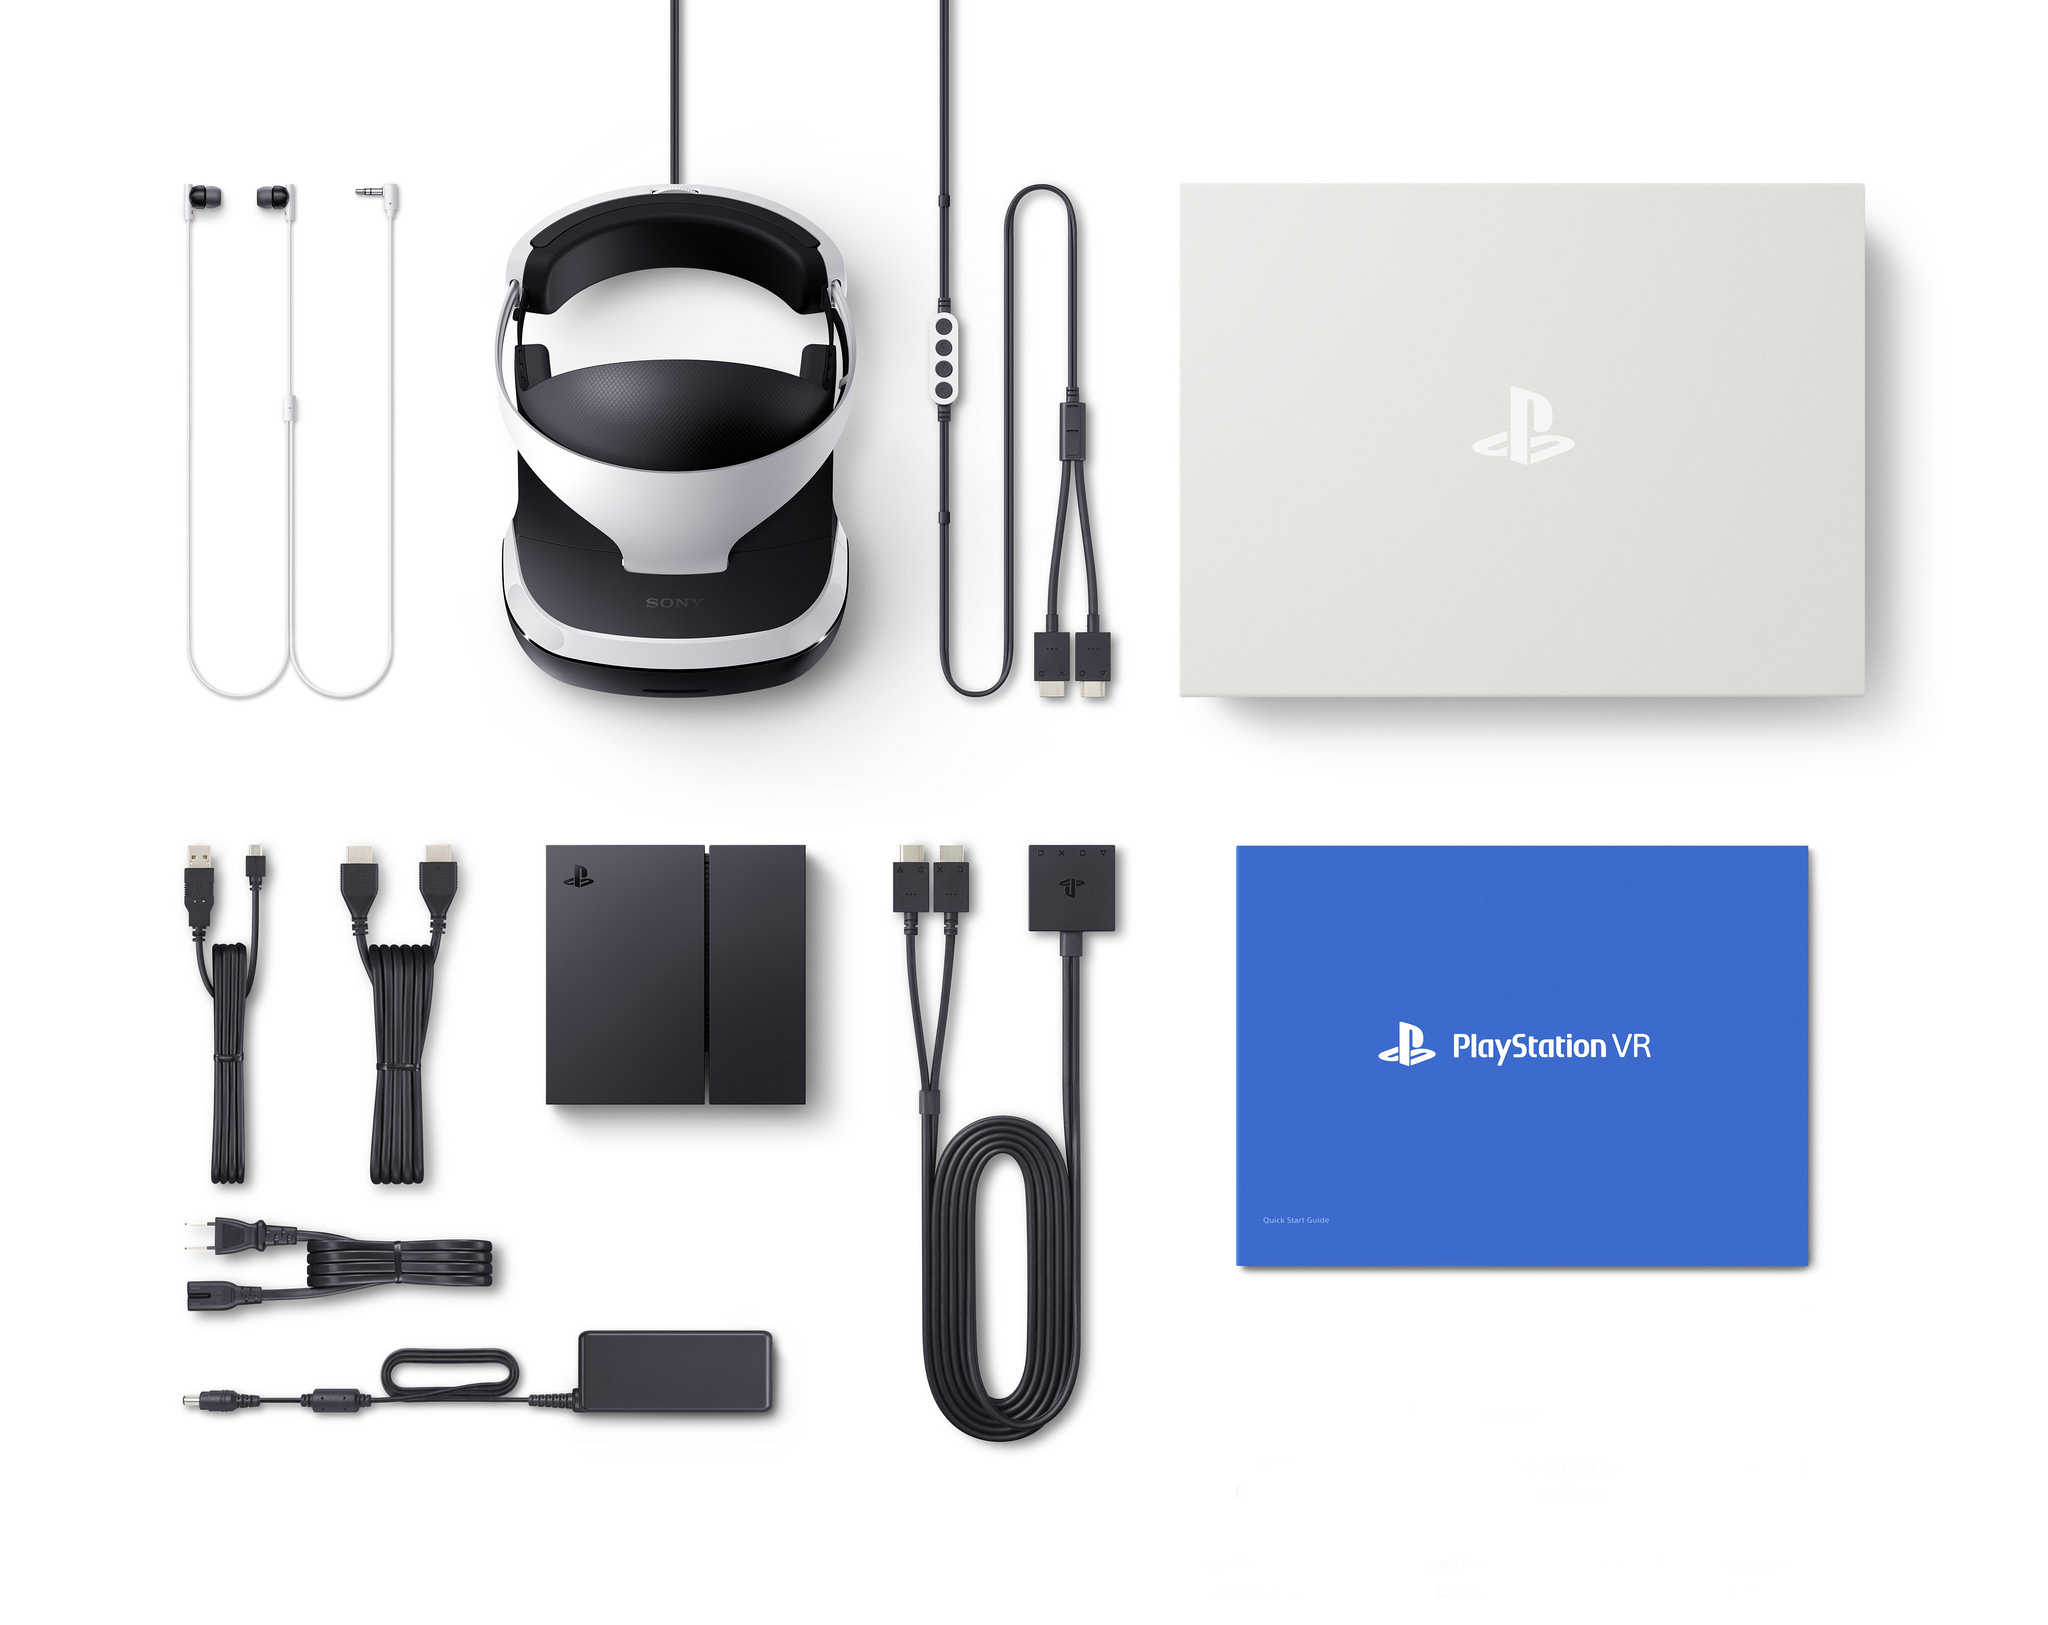 PlayStation VR includes